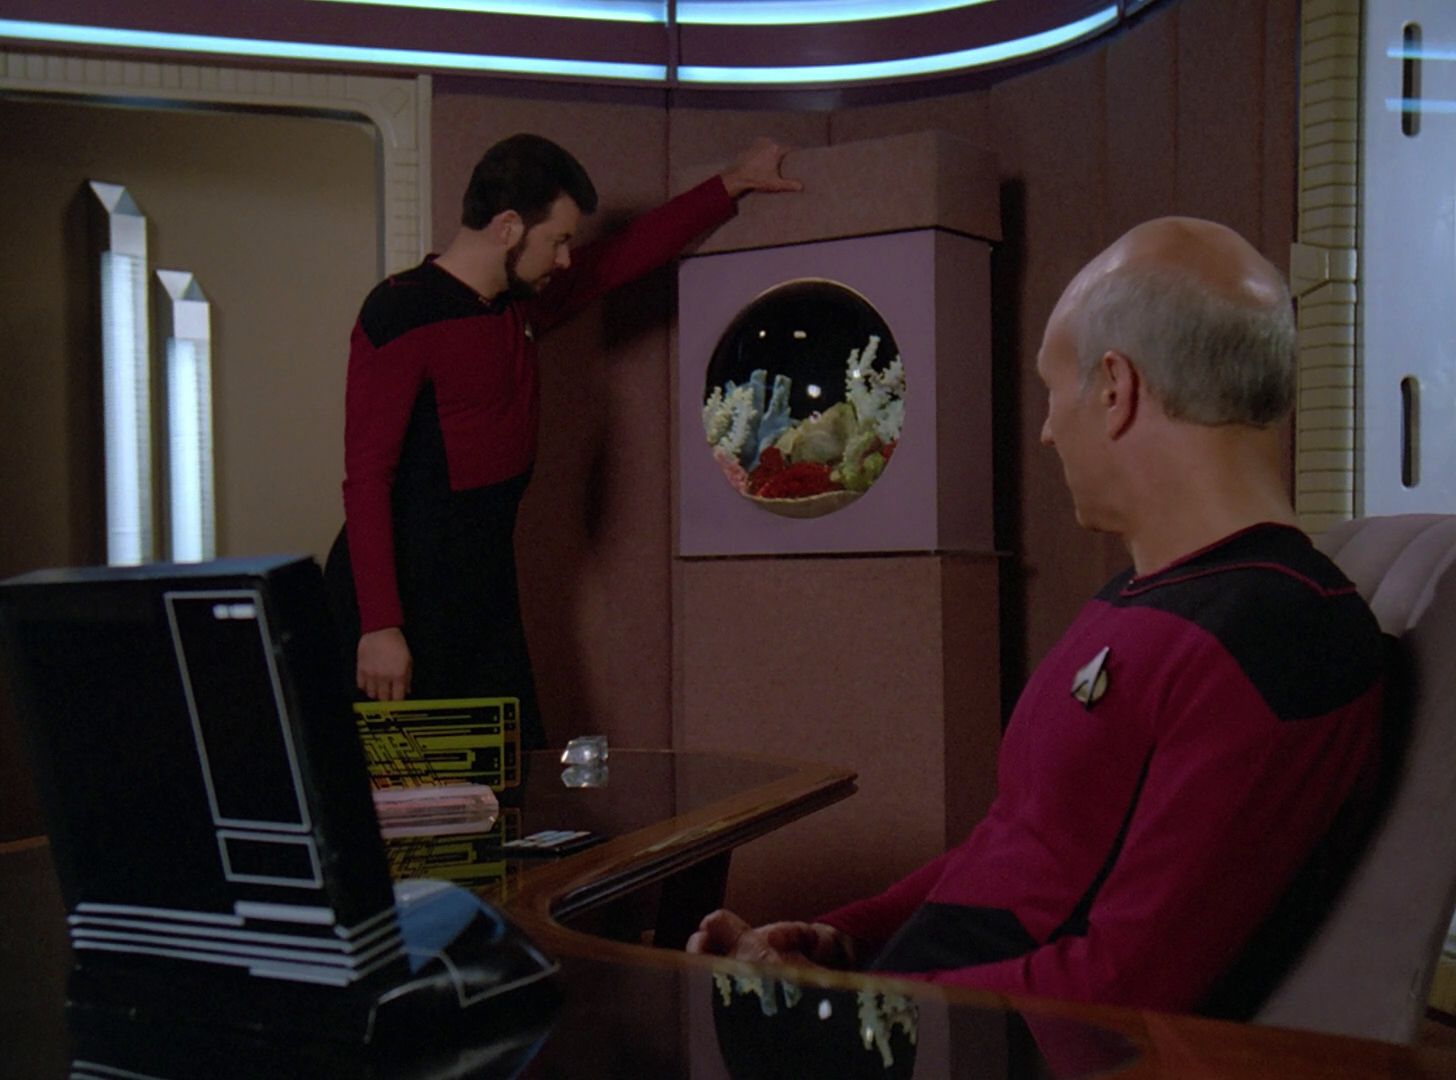 Riker and Picard discuss promotion